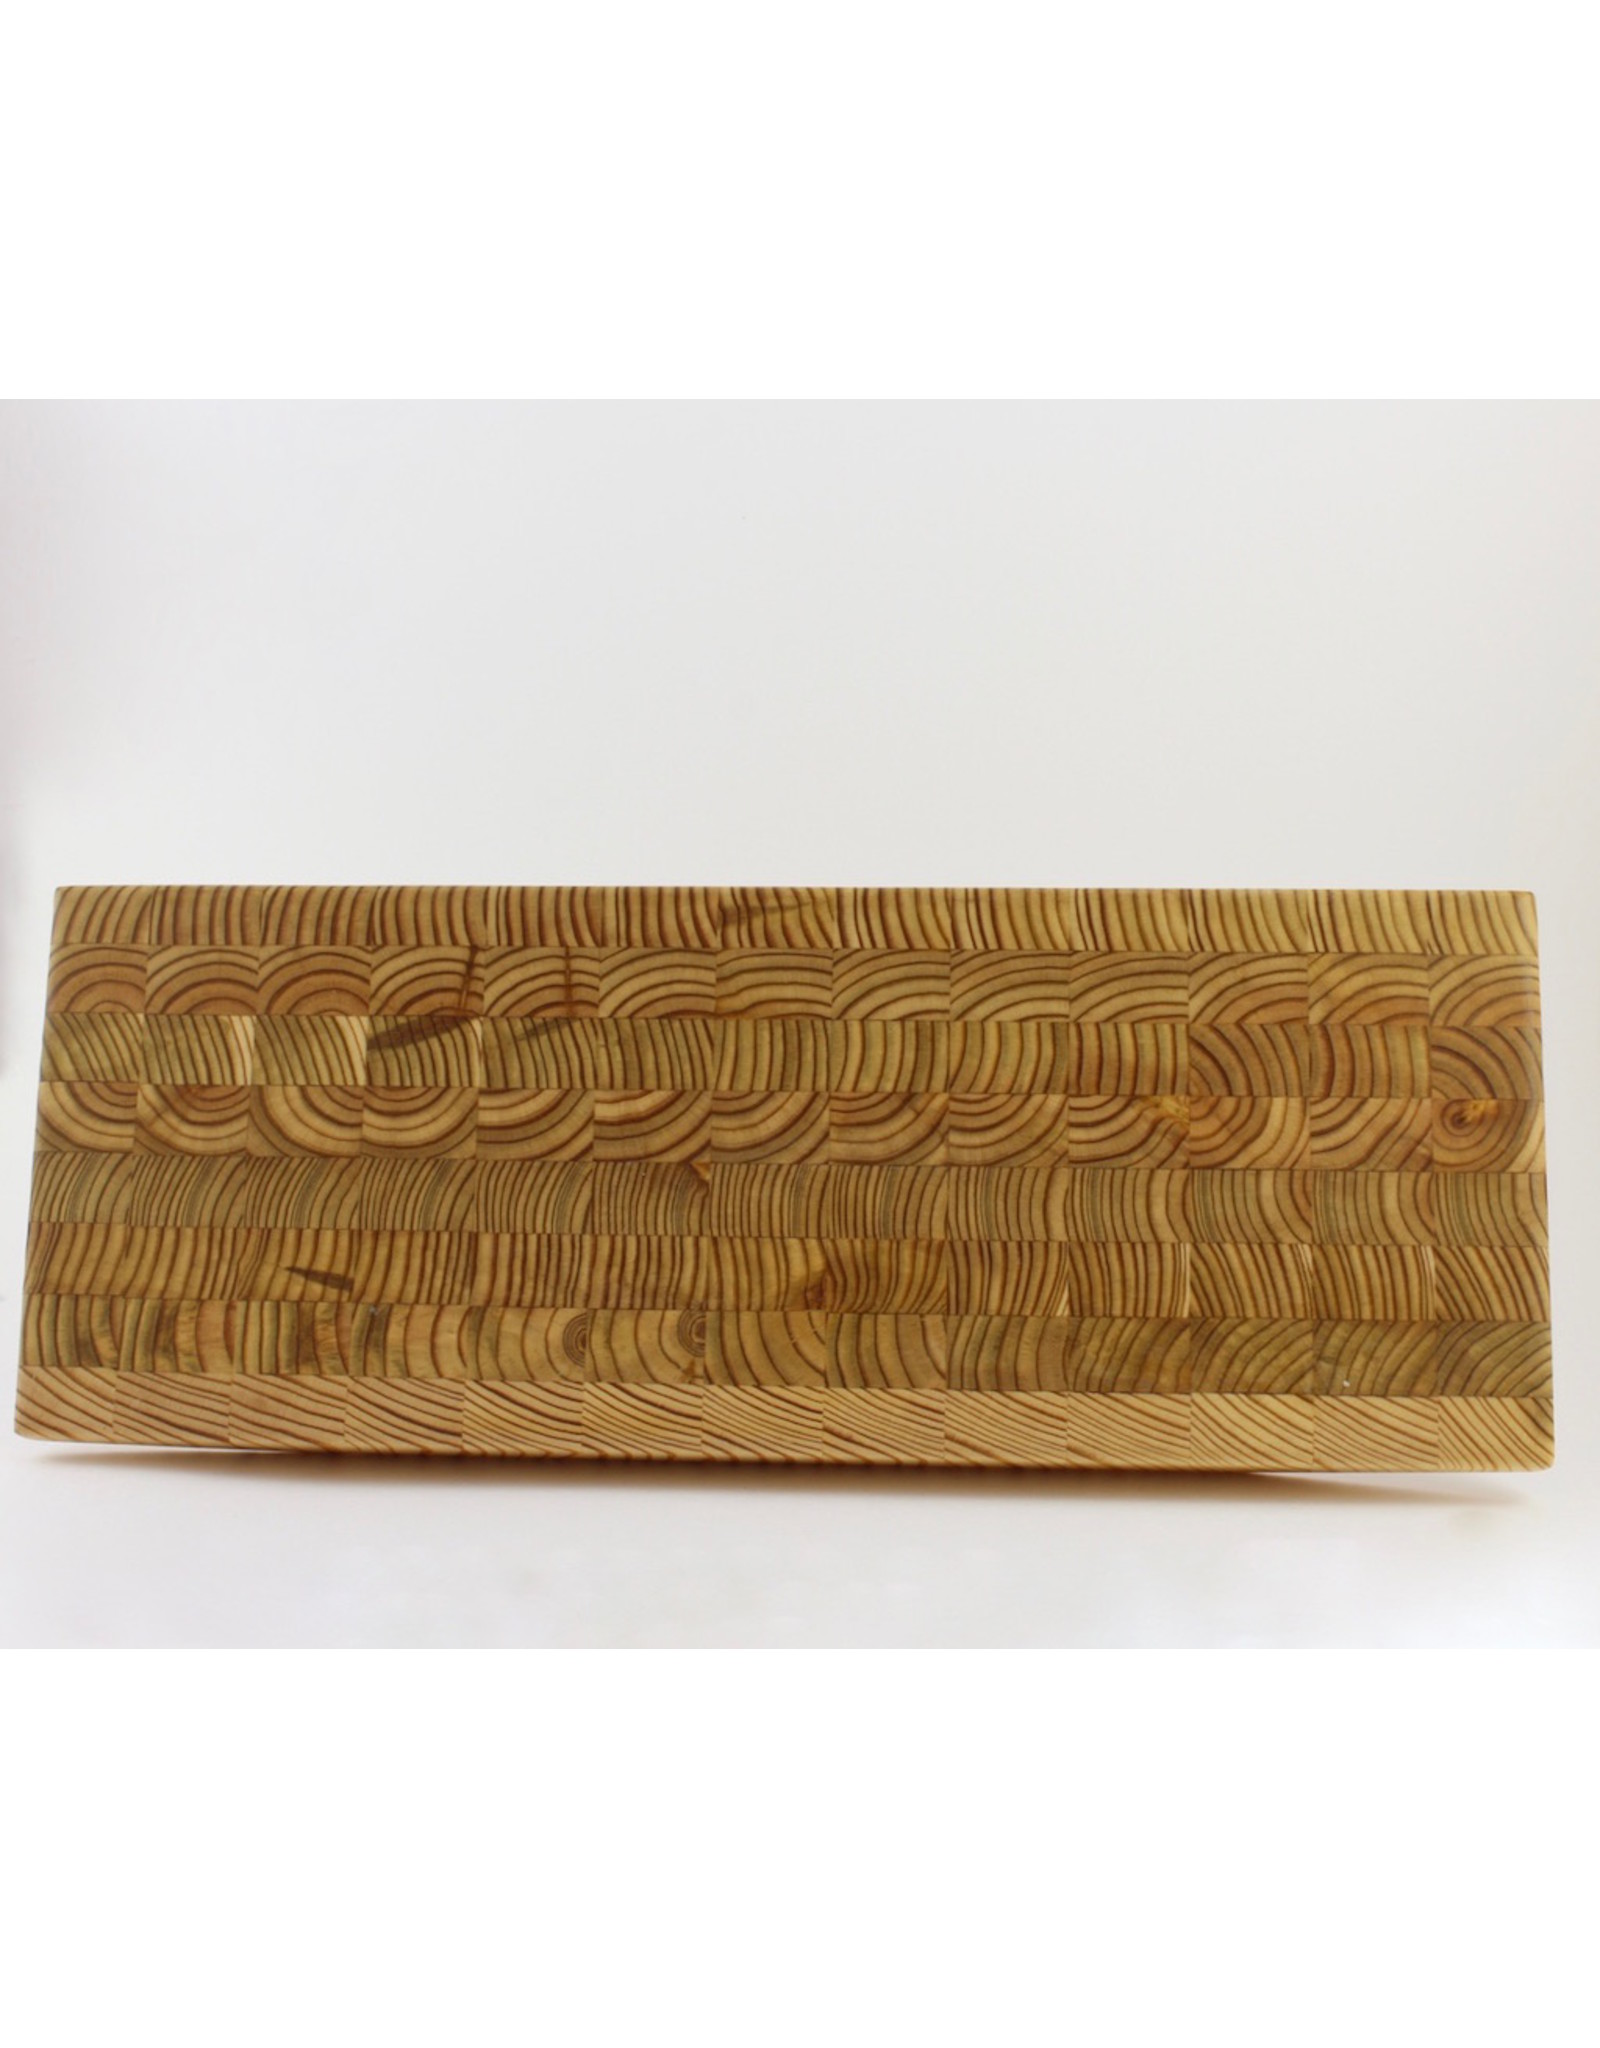 Larch Wood Canada Ki Small Serving Board by Larch Wood Canada